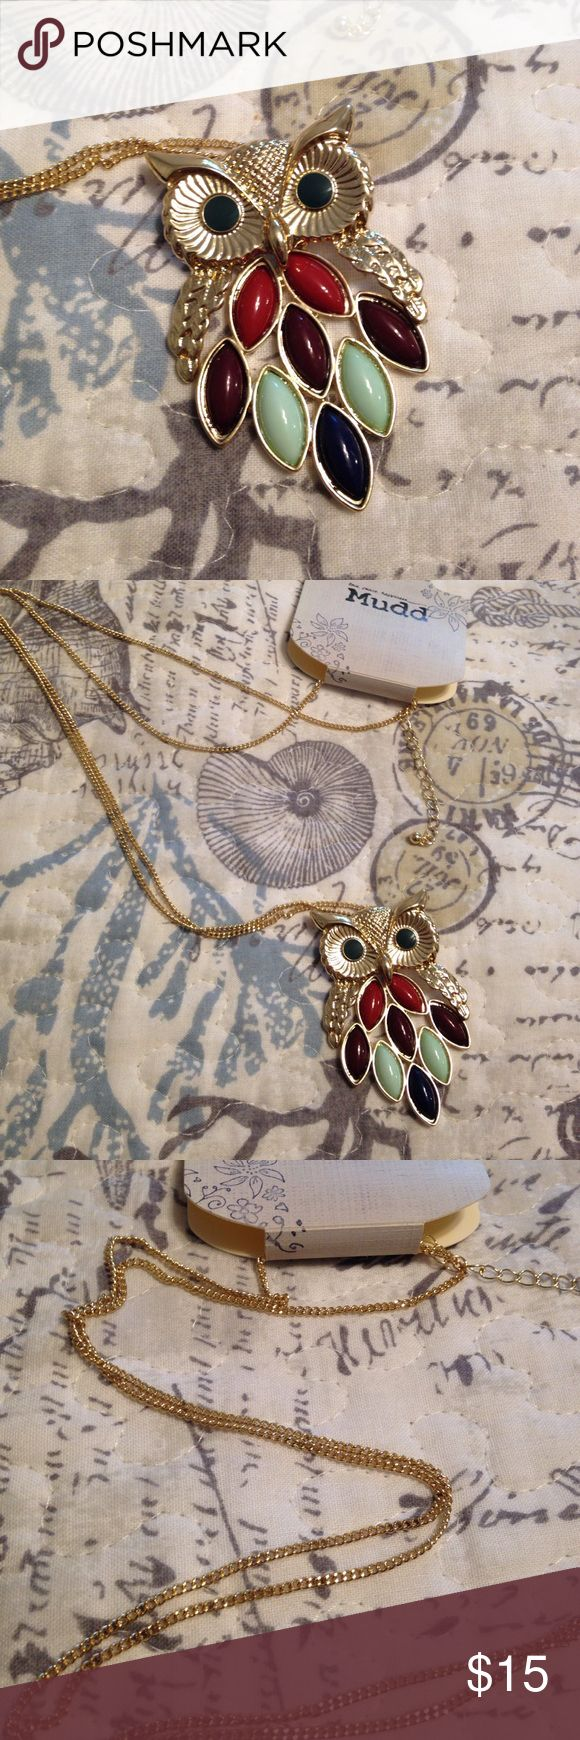 "Listing! NWT Adorable Owl Necklace Owl has a multi-colored body set in gold-toned metal.  Owl measures approximately 1 3/4"" x 2 1/2"" and features a 33"" adjustable gold chain.  Whimsical and cute! Mudd Jewelry Necklaces"